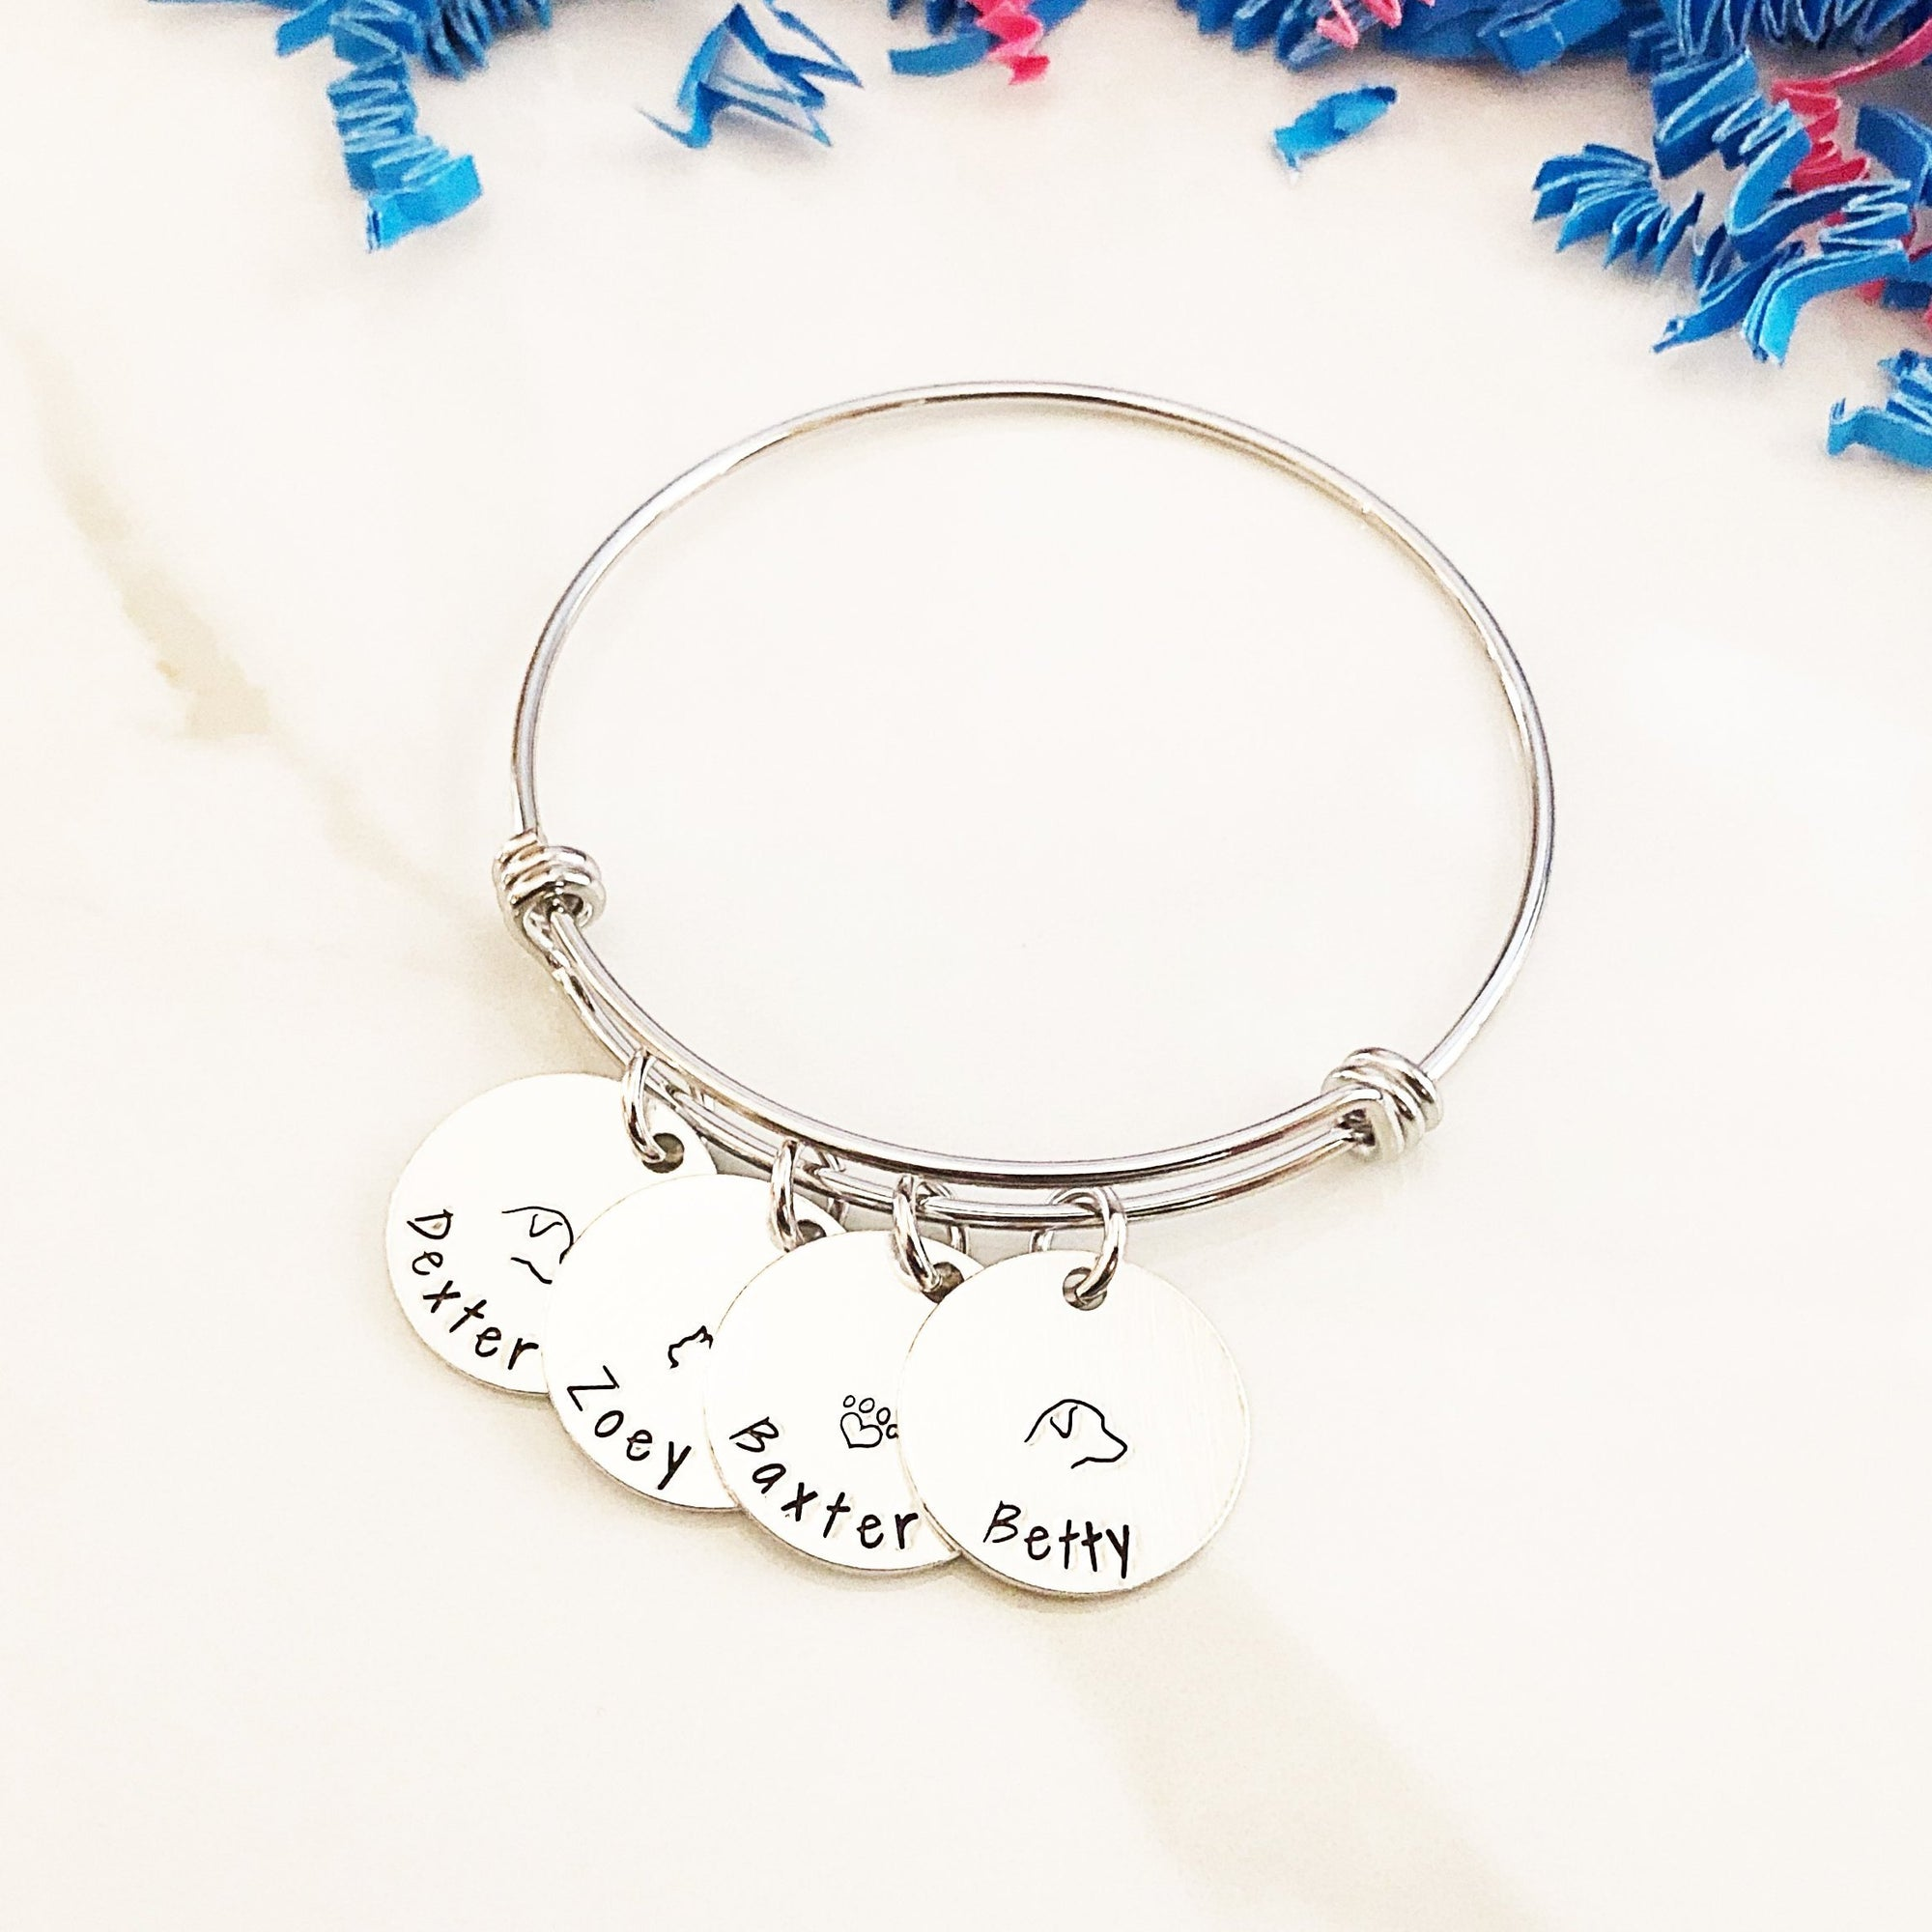 Personalized Pet Name Bracelet